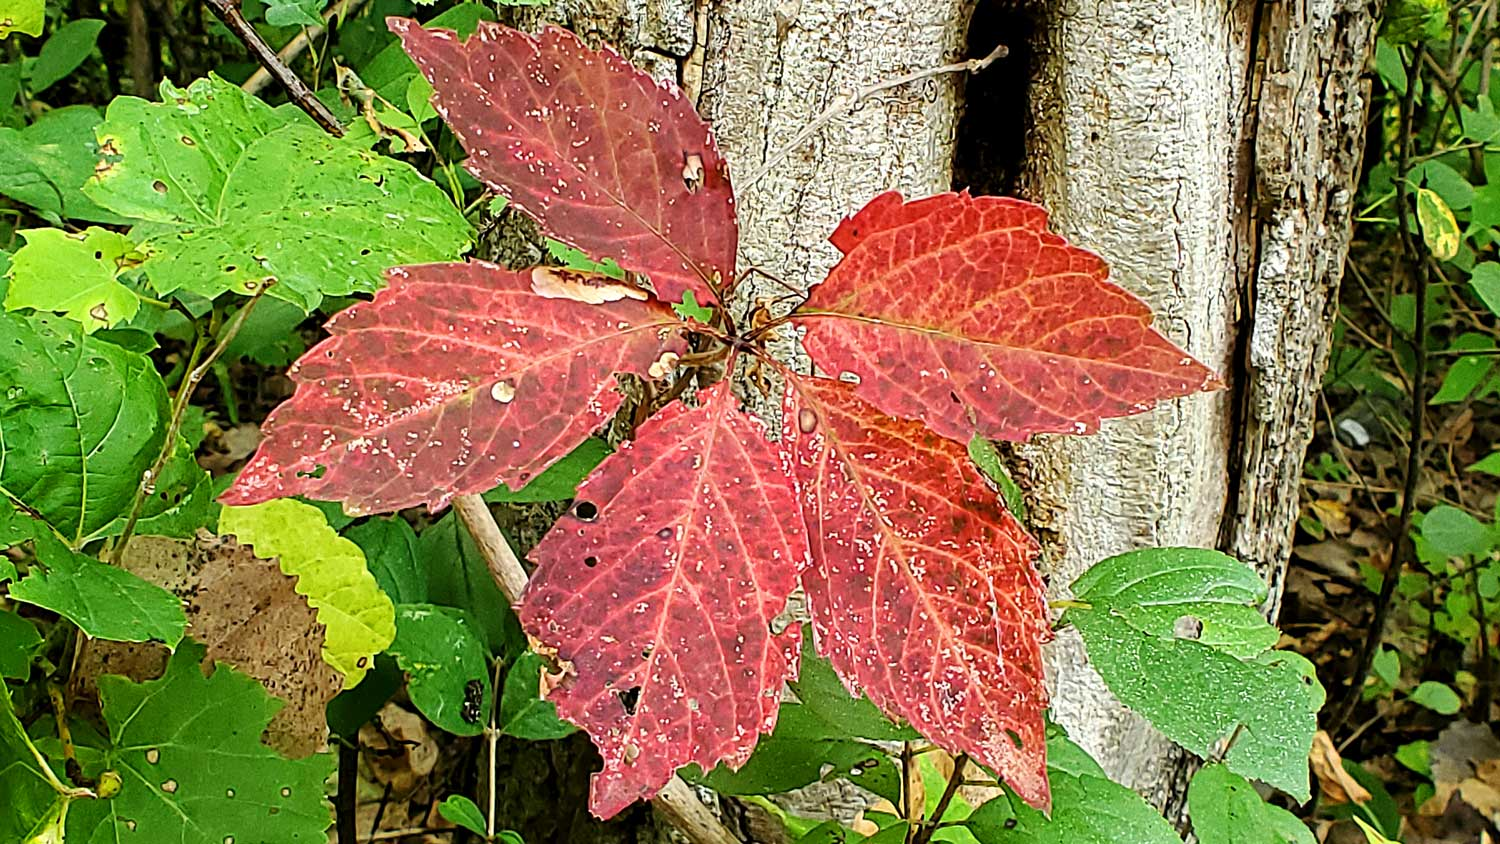 Red leaf at base of tree at The Hollows.